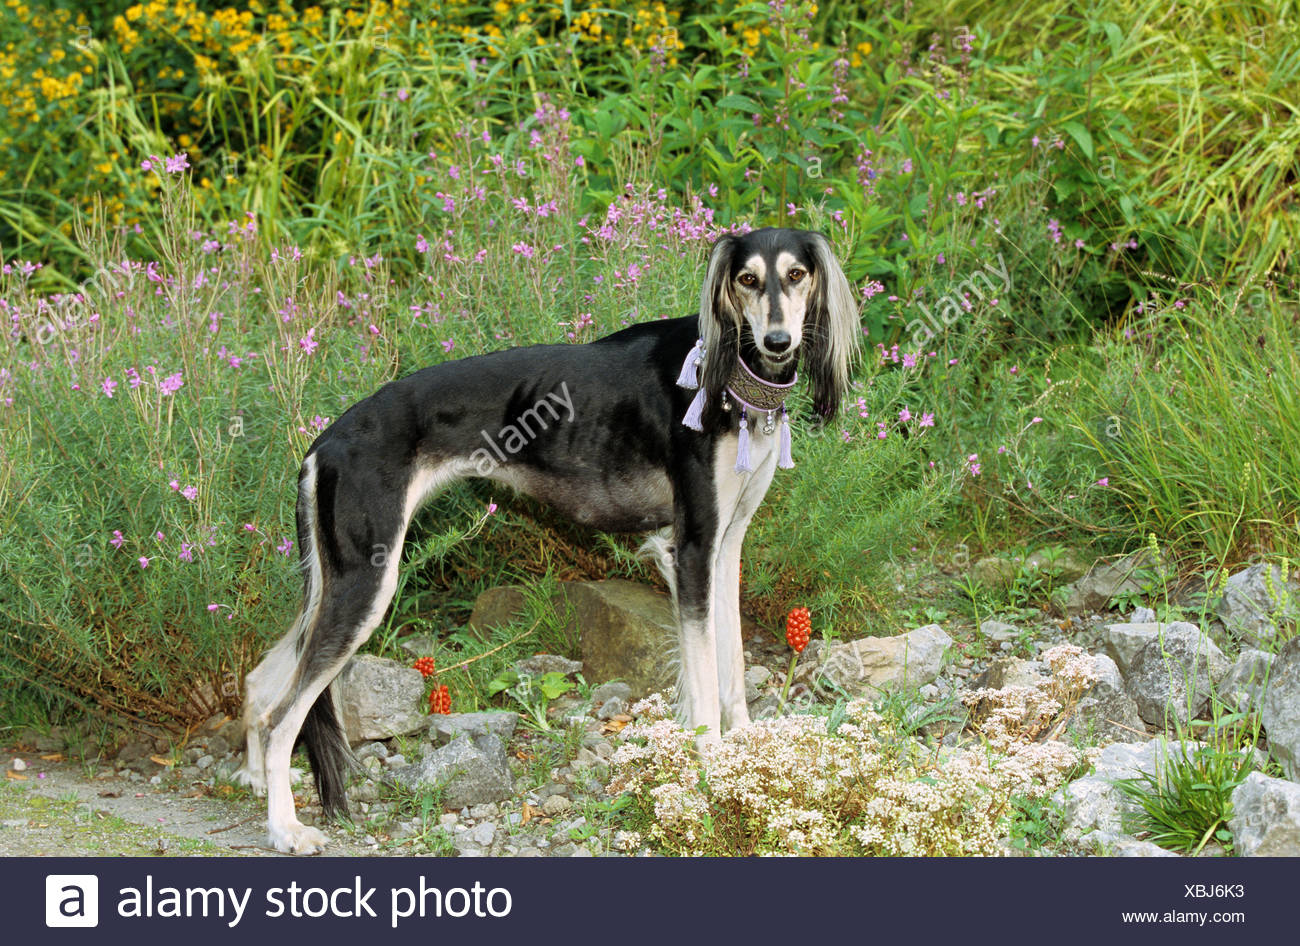 Saluki dog - standing in front of flowers Stock Photo